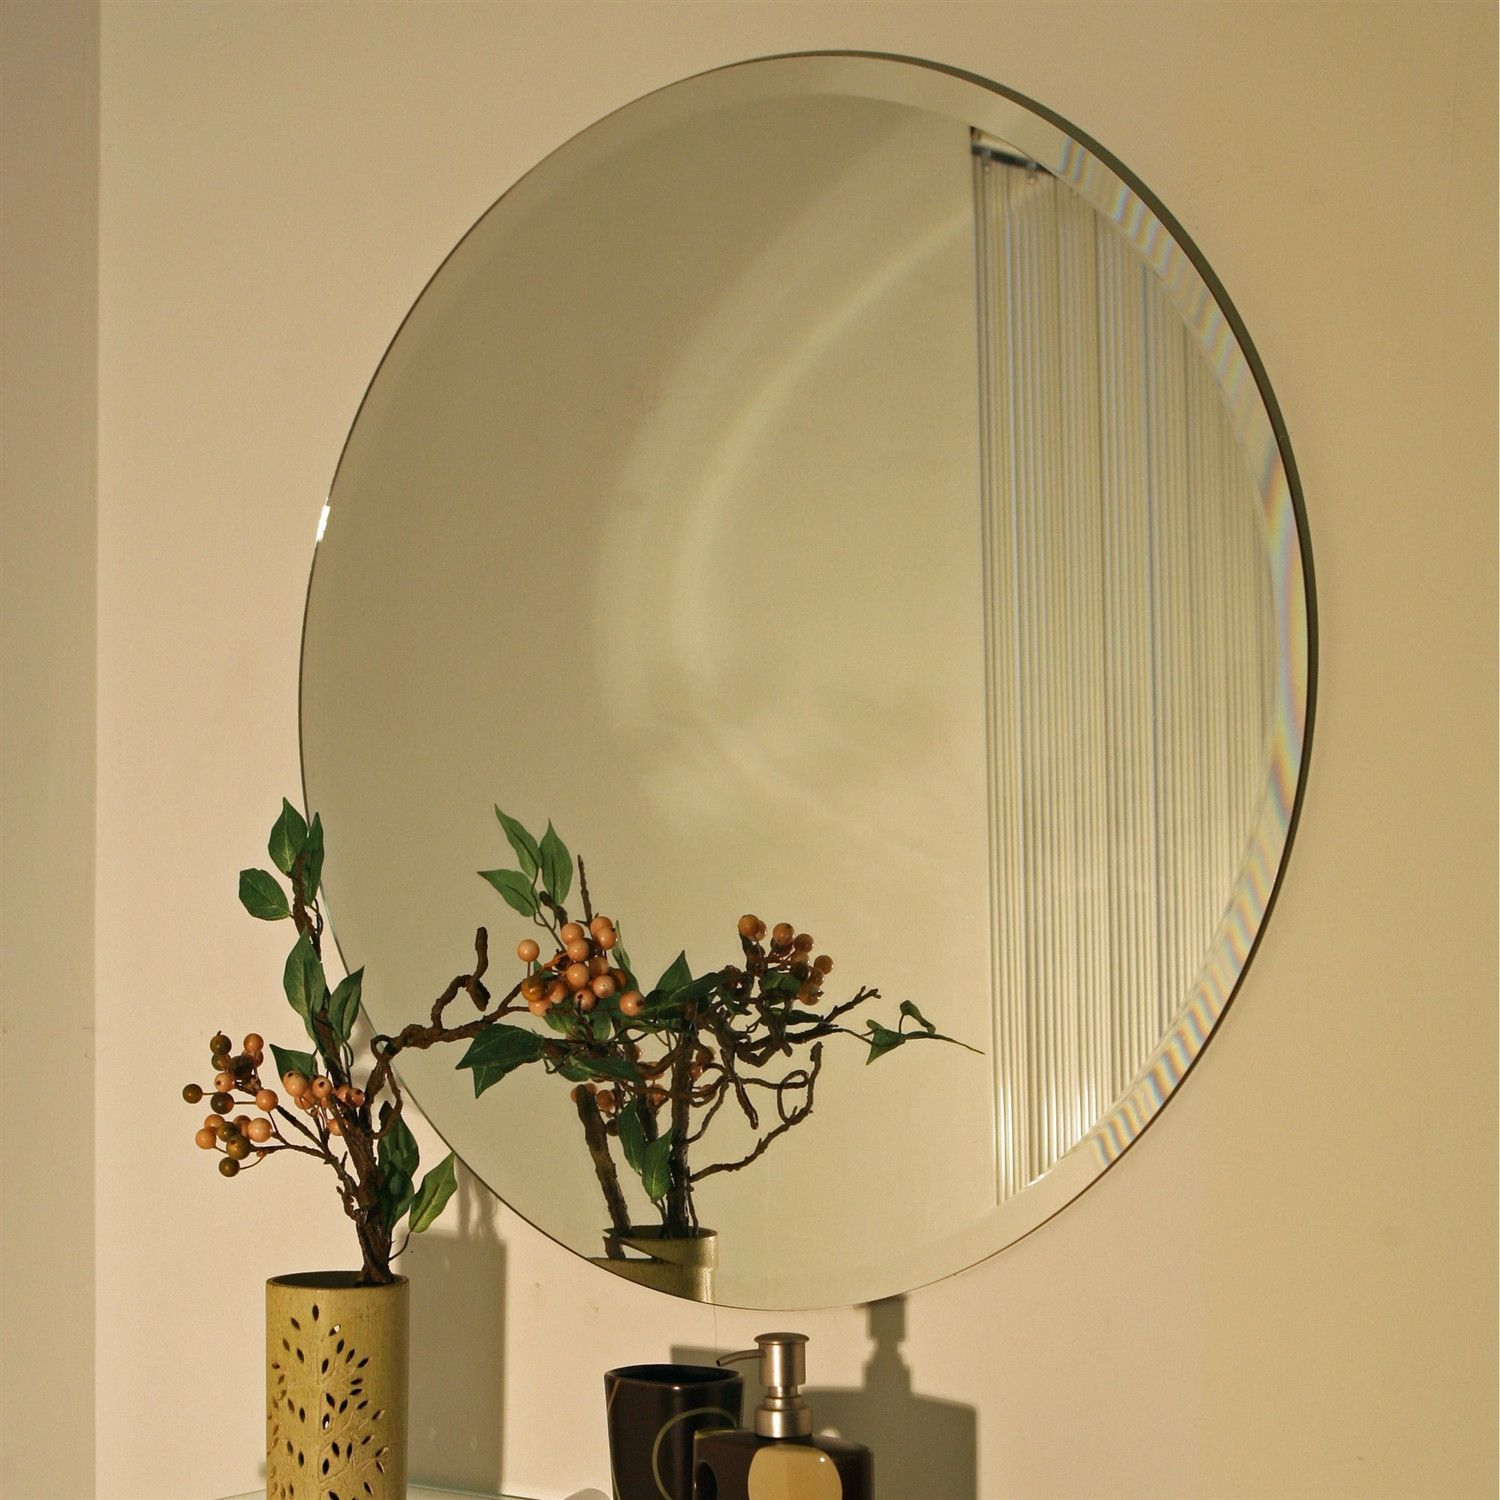 18 Inch Round Circular Vanity Wall Mirror With Bevel Edge